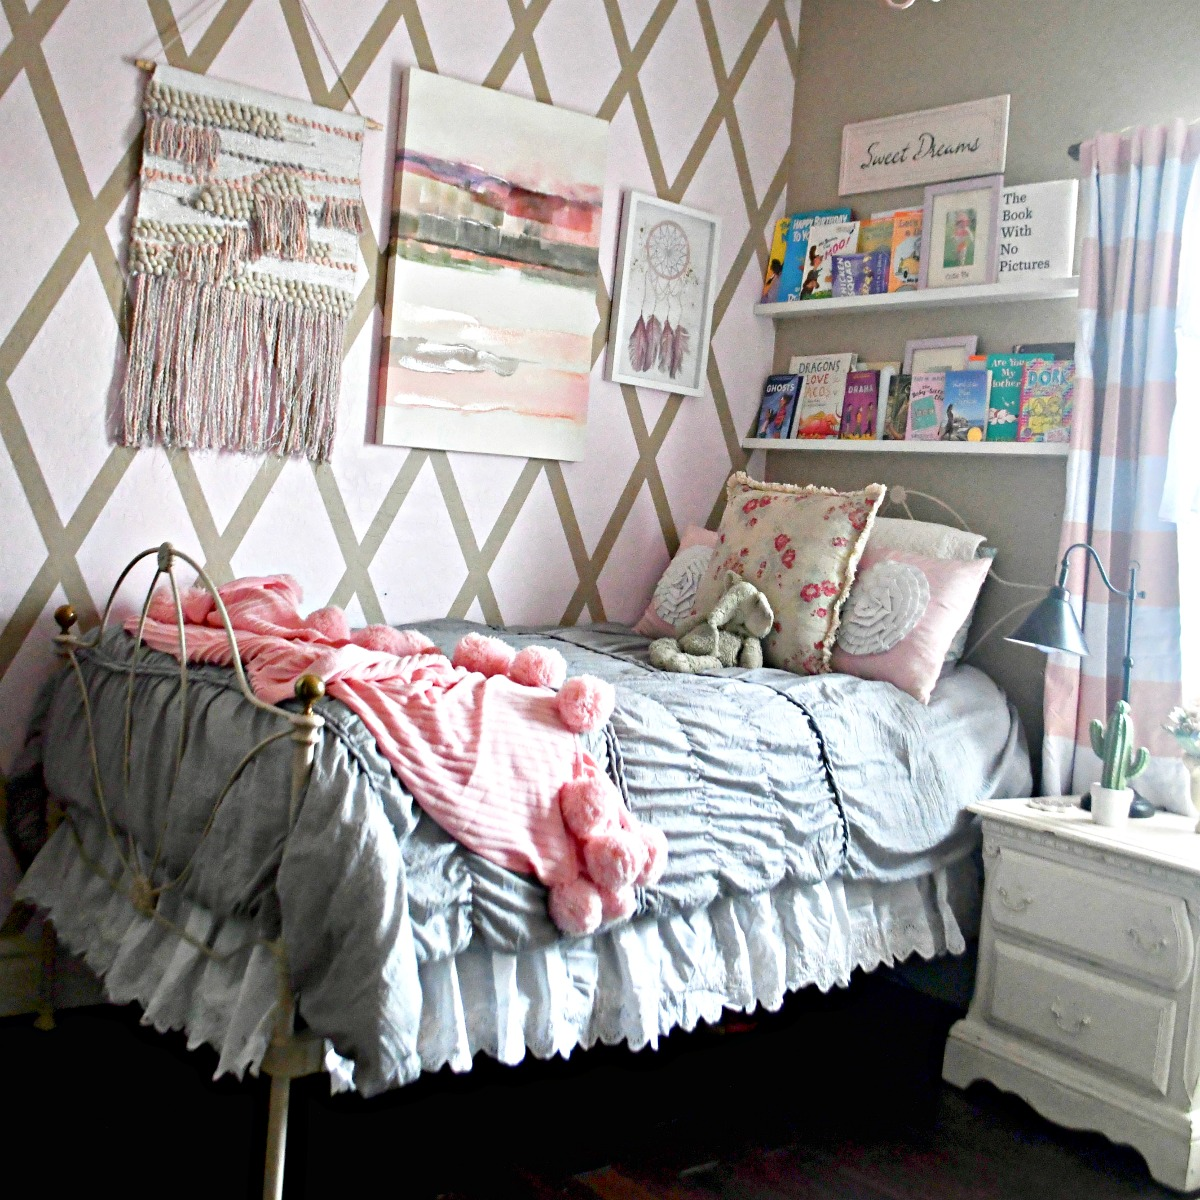 boho room with various decor and gray bedding with pink throw blanket